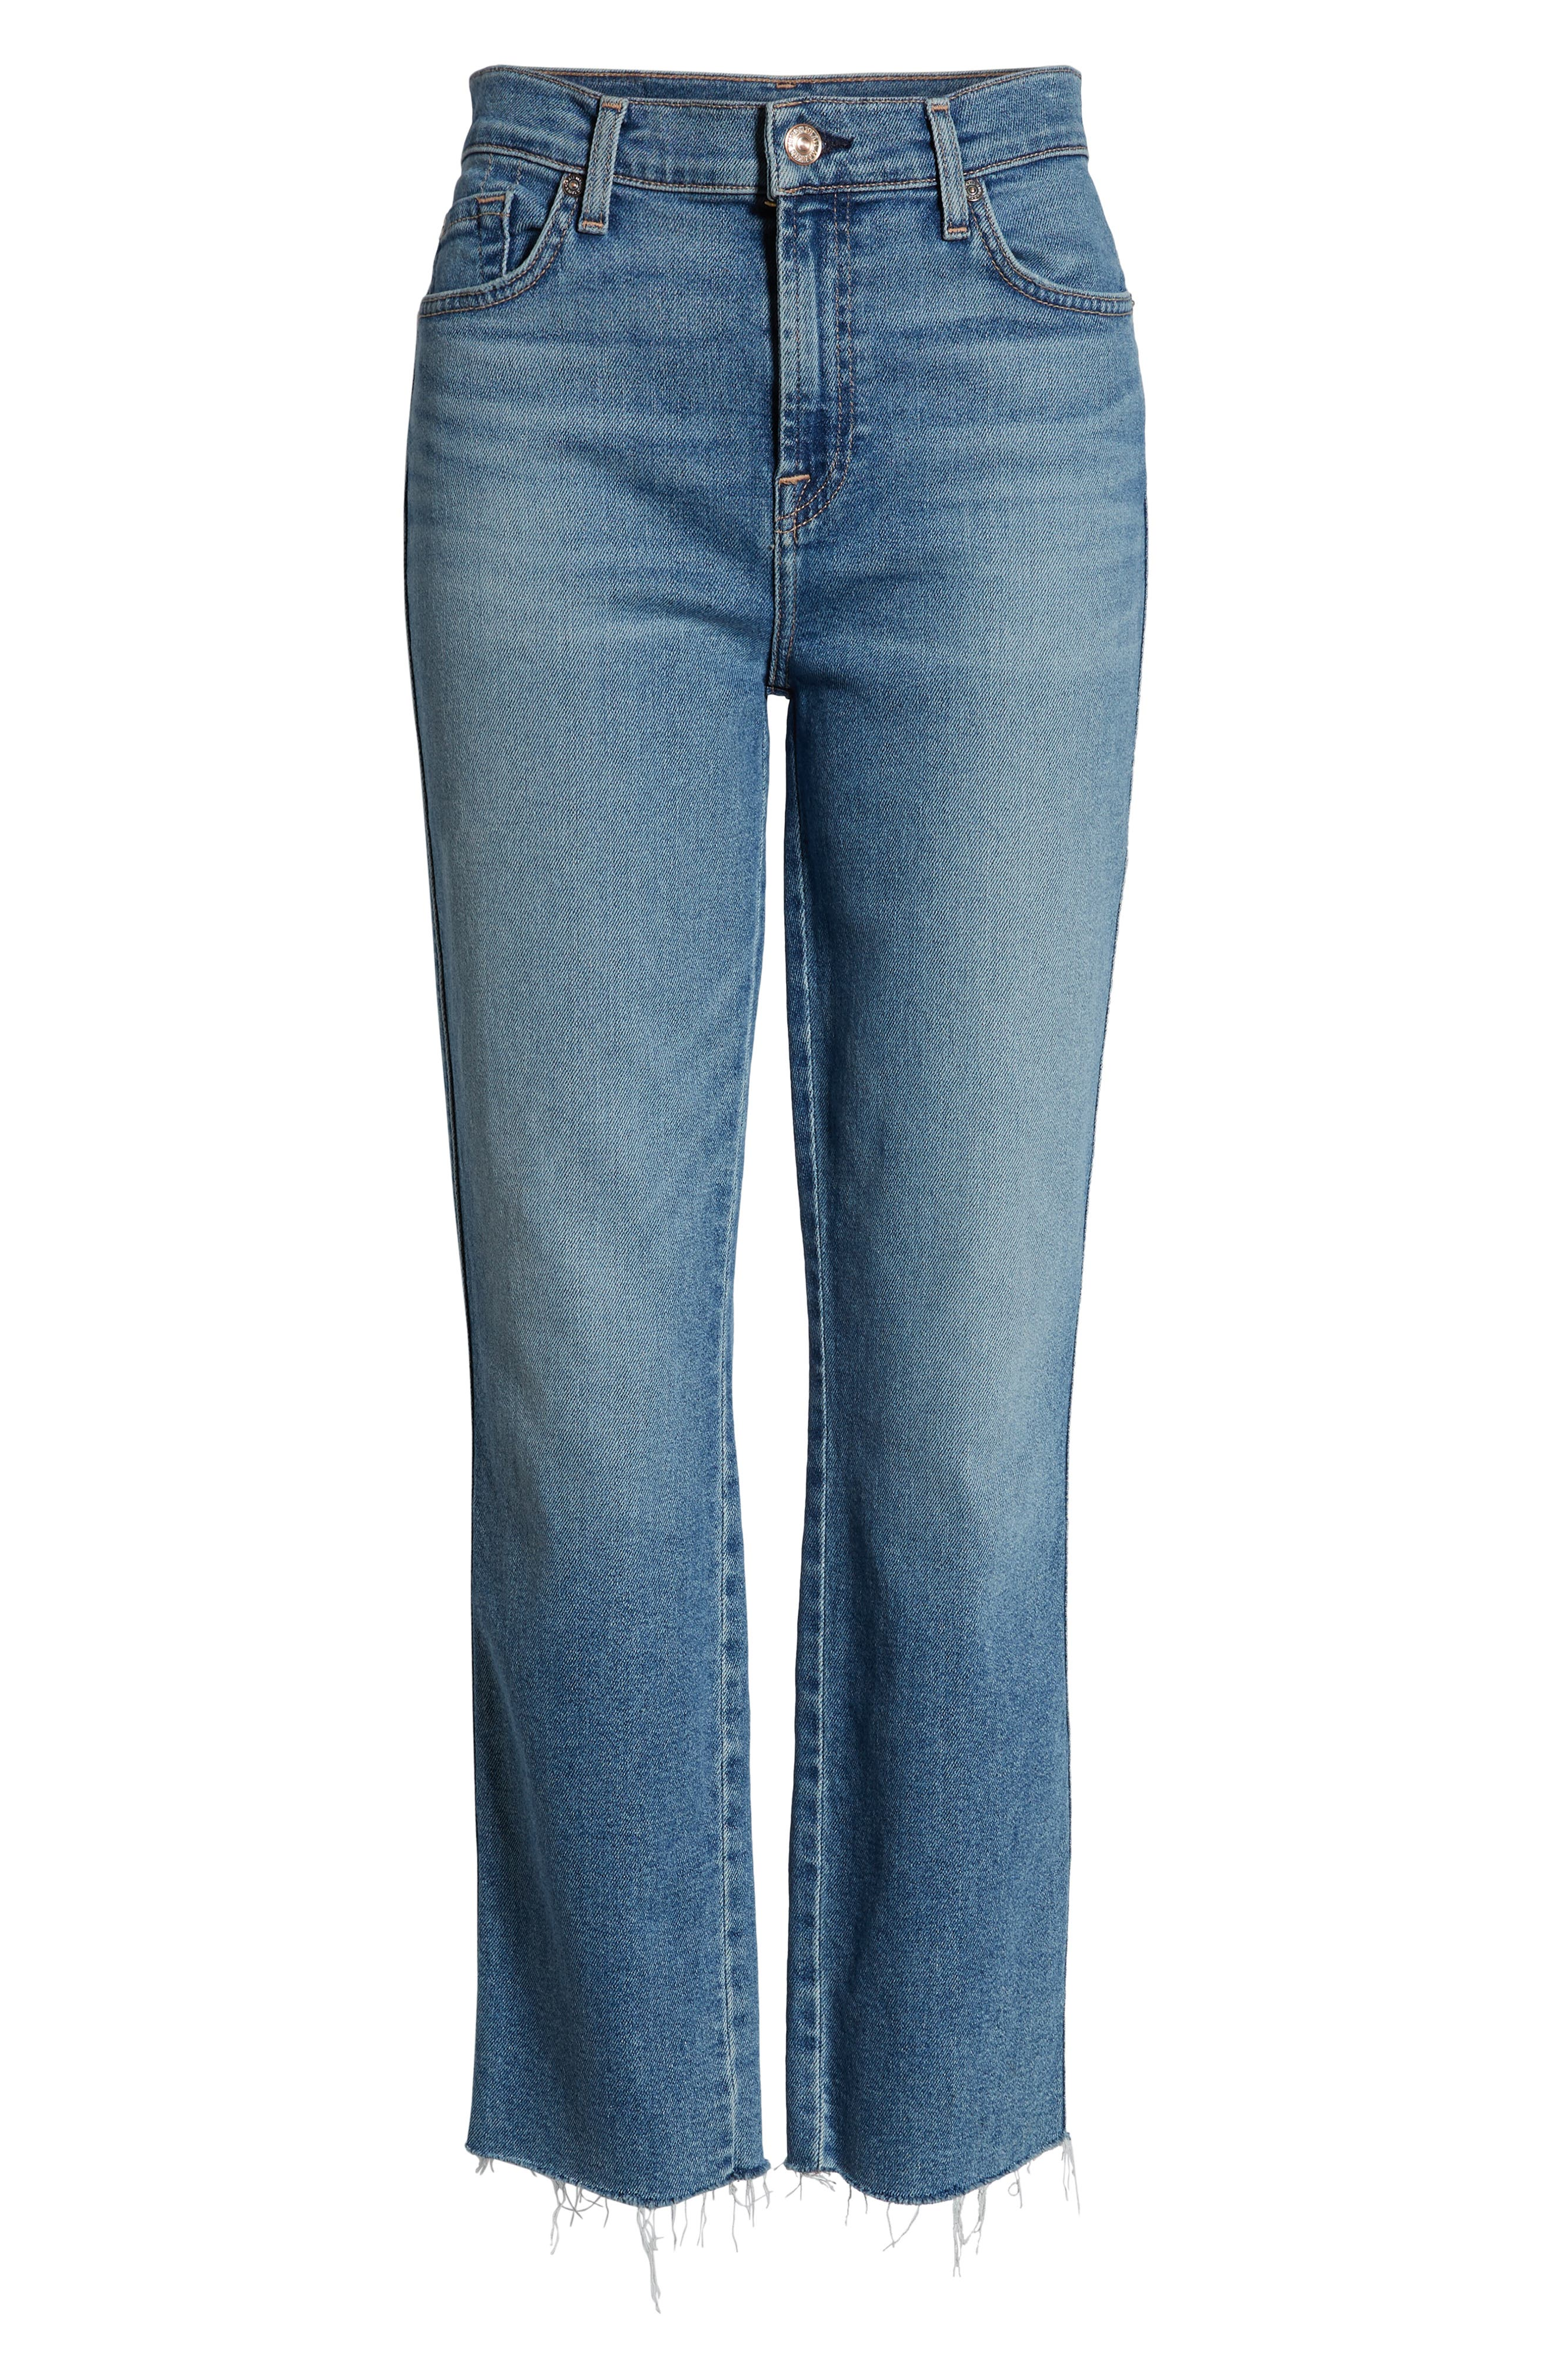 7 FOR ALL MANKIND<SUP>®</SUP>, Edie High Waist Crop Jeans, Alternate thumbnail 7, color, LUXE VINTAGE FLORA